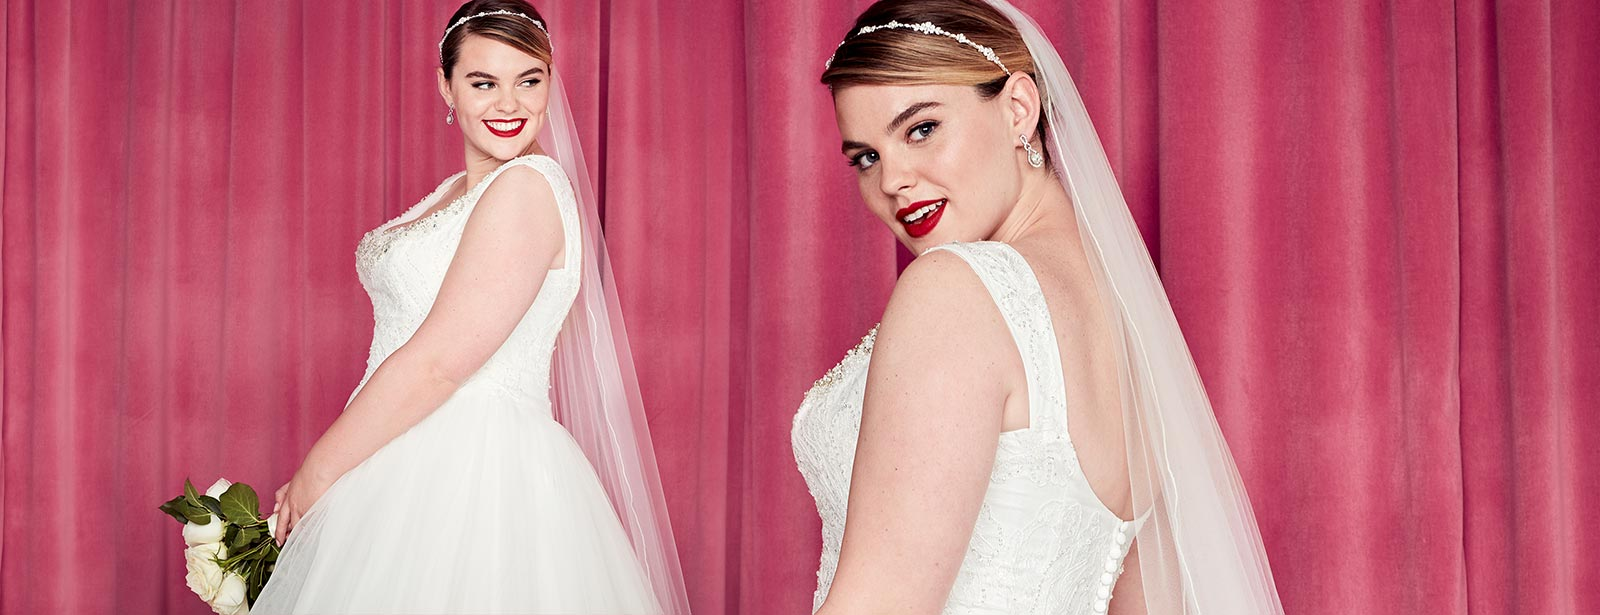 Br bridal headpieces montreal - Now Extended Ends August 15 Select Wedding Dresses